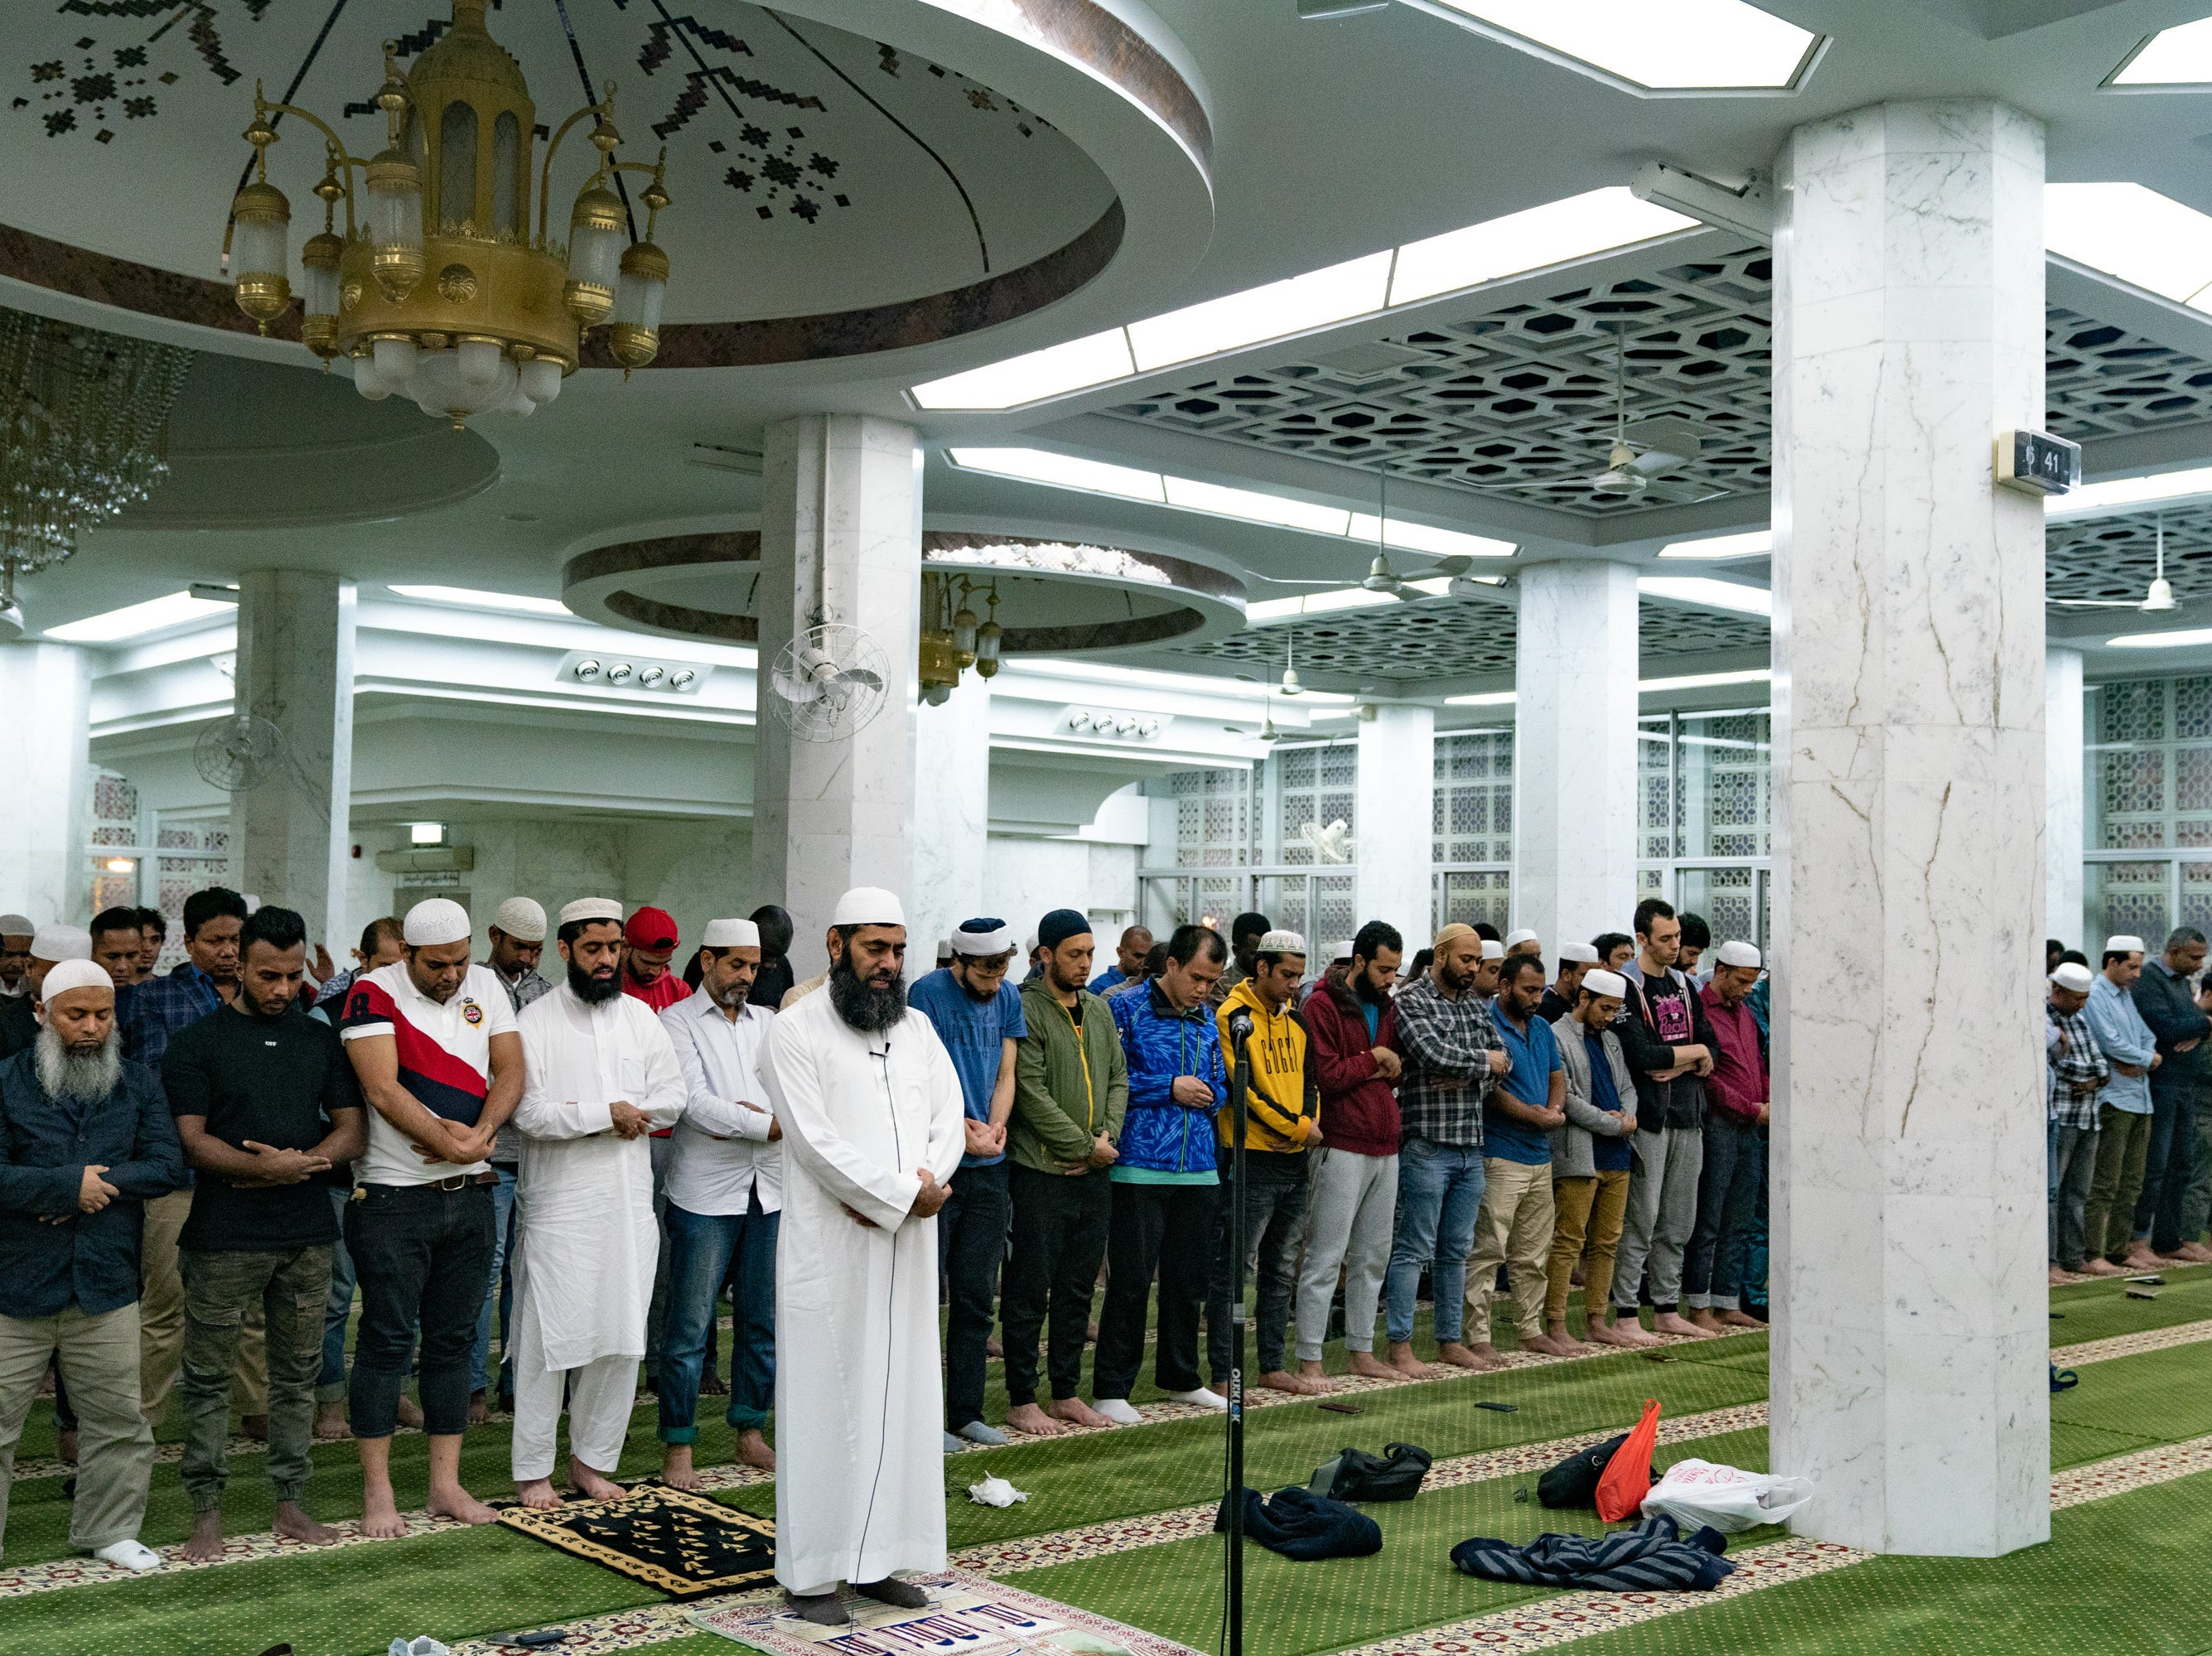 The Incorporated Trustees of the Islam Community Fund of Hong Kong Chief Iman, Mufti Muhammad Arshad, leads a special prayer at the Kowloon Masjid & Islamic Centre to commemorate victims of New Zealand mass shooting on March 16, 2019 in Hong Kong, China.